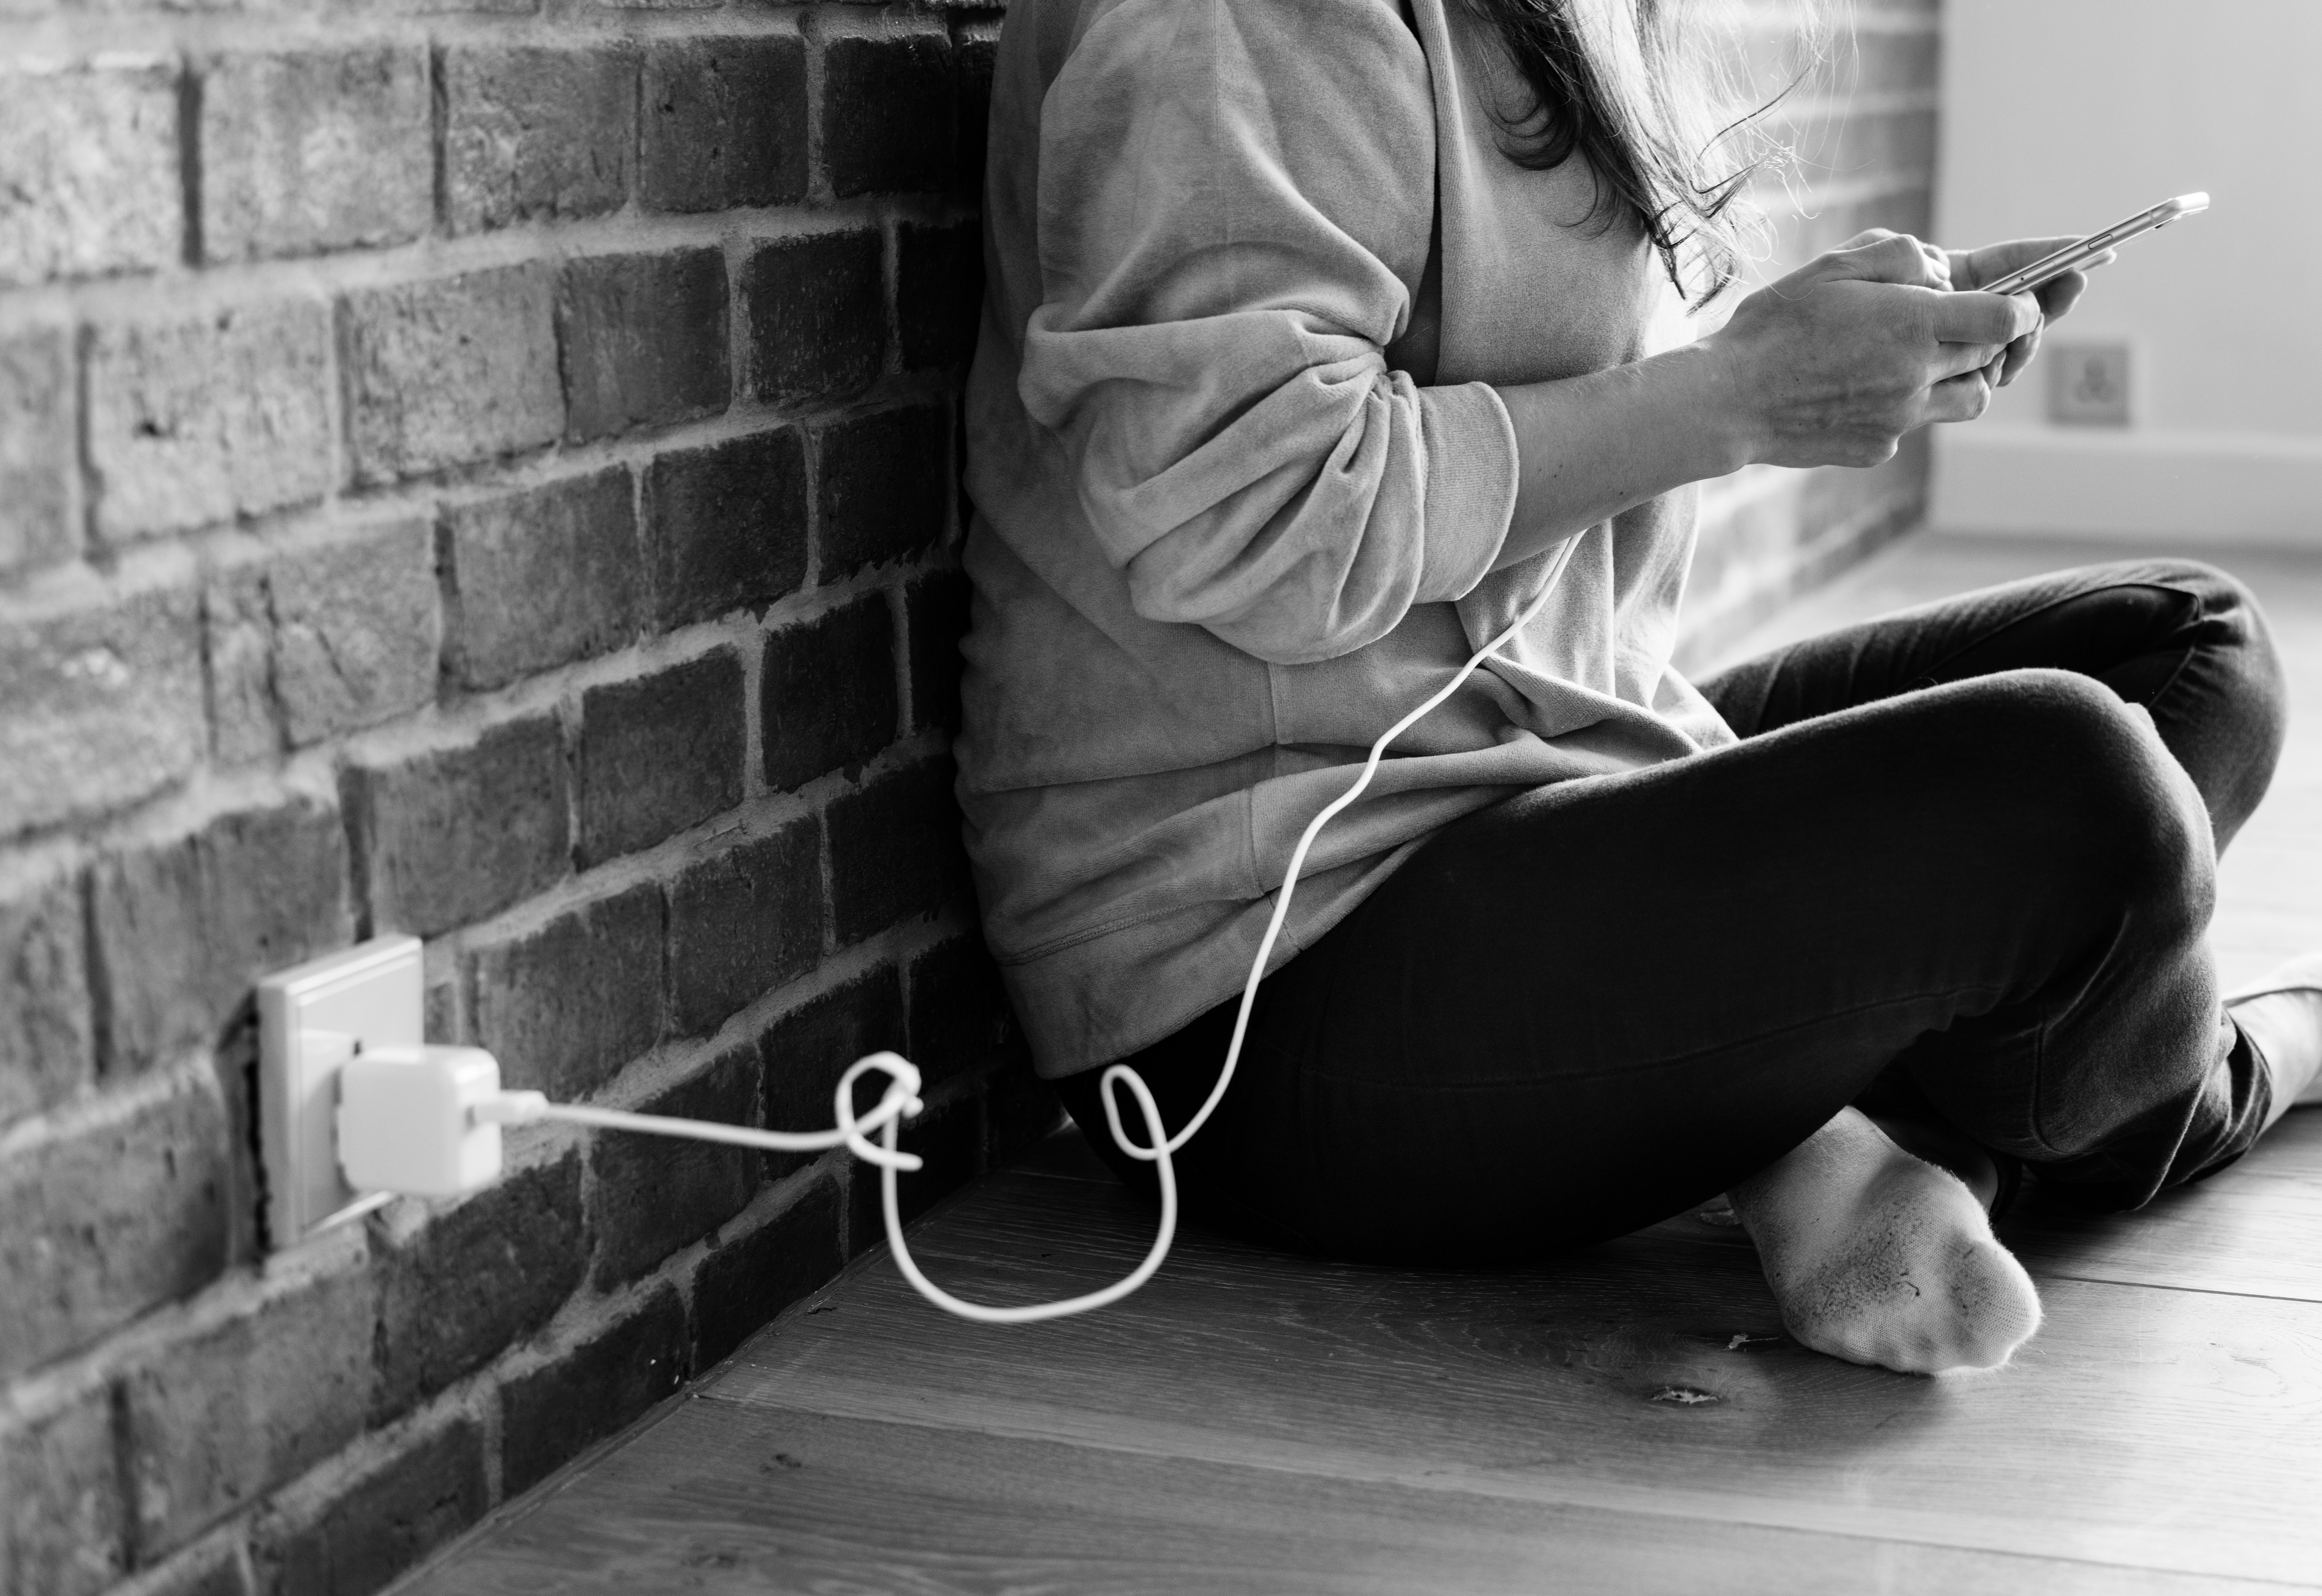 grayscale photo of person sitting beside wall using smartphone